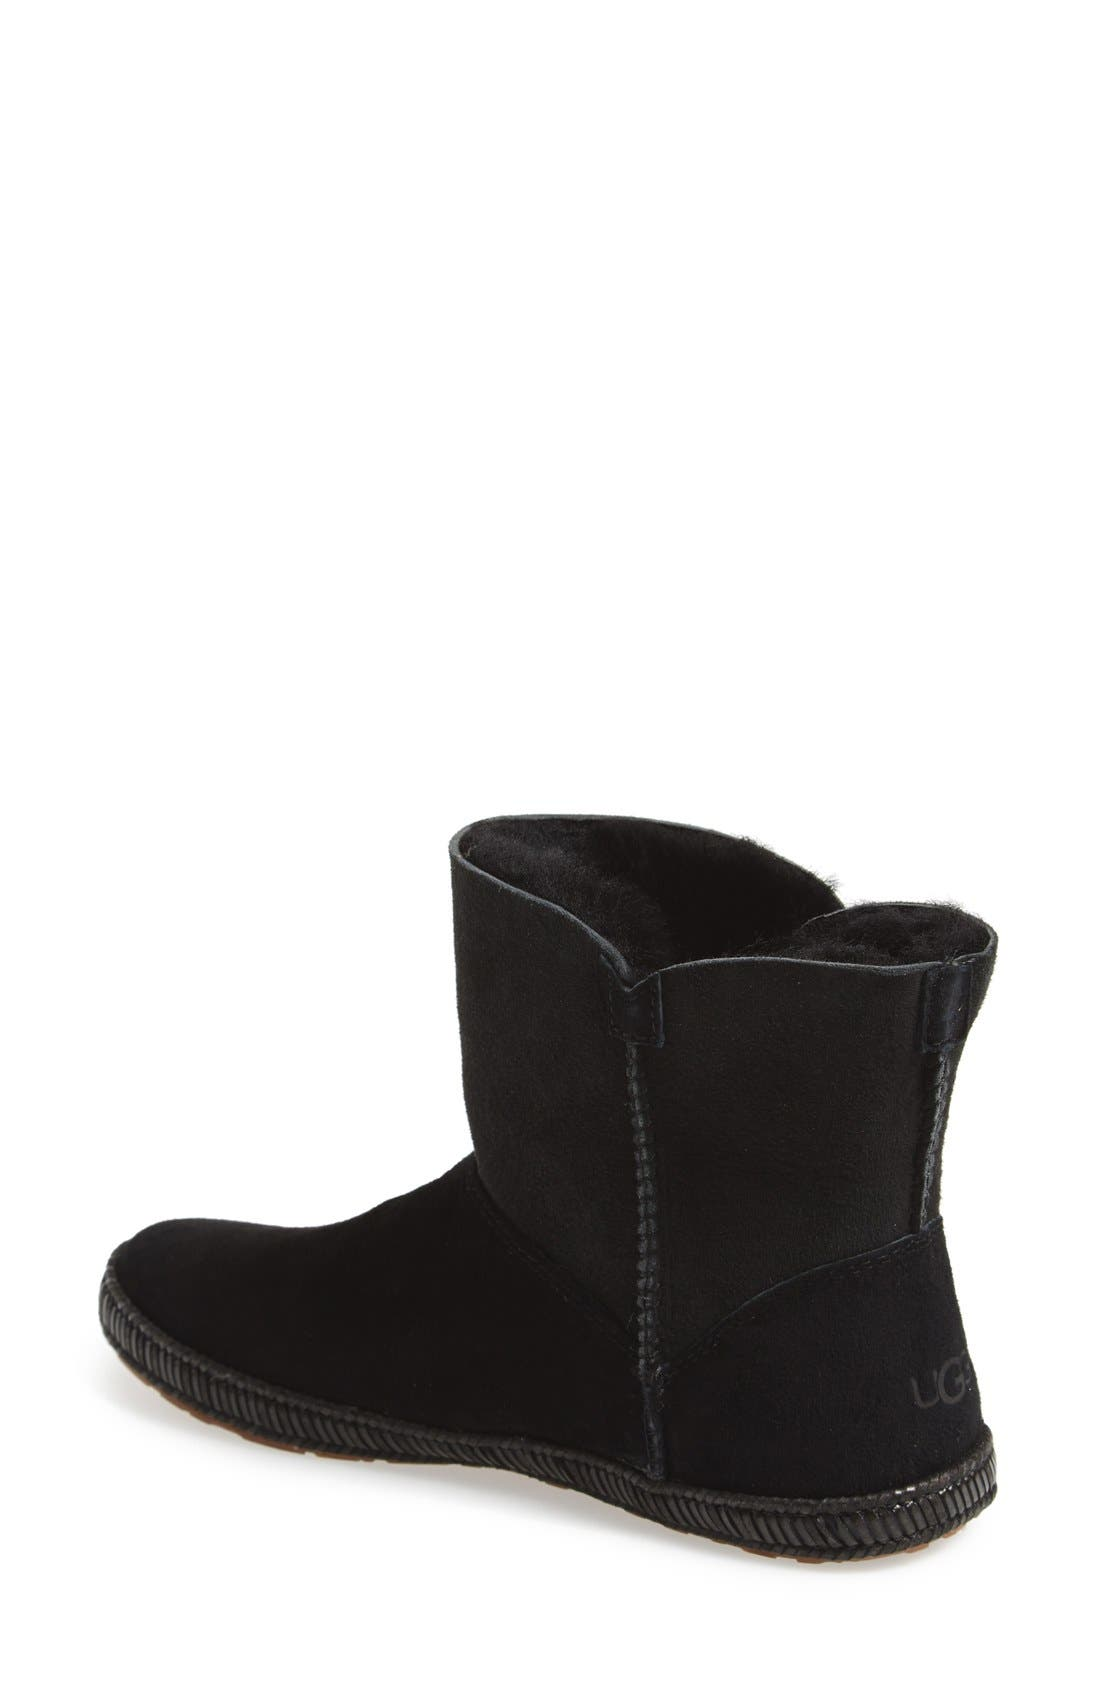 'Garnet' Toggle Boot,                             Alternate thumbnail 2, color,                             Black